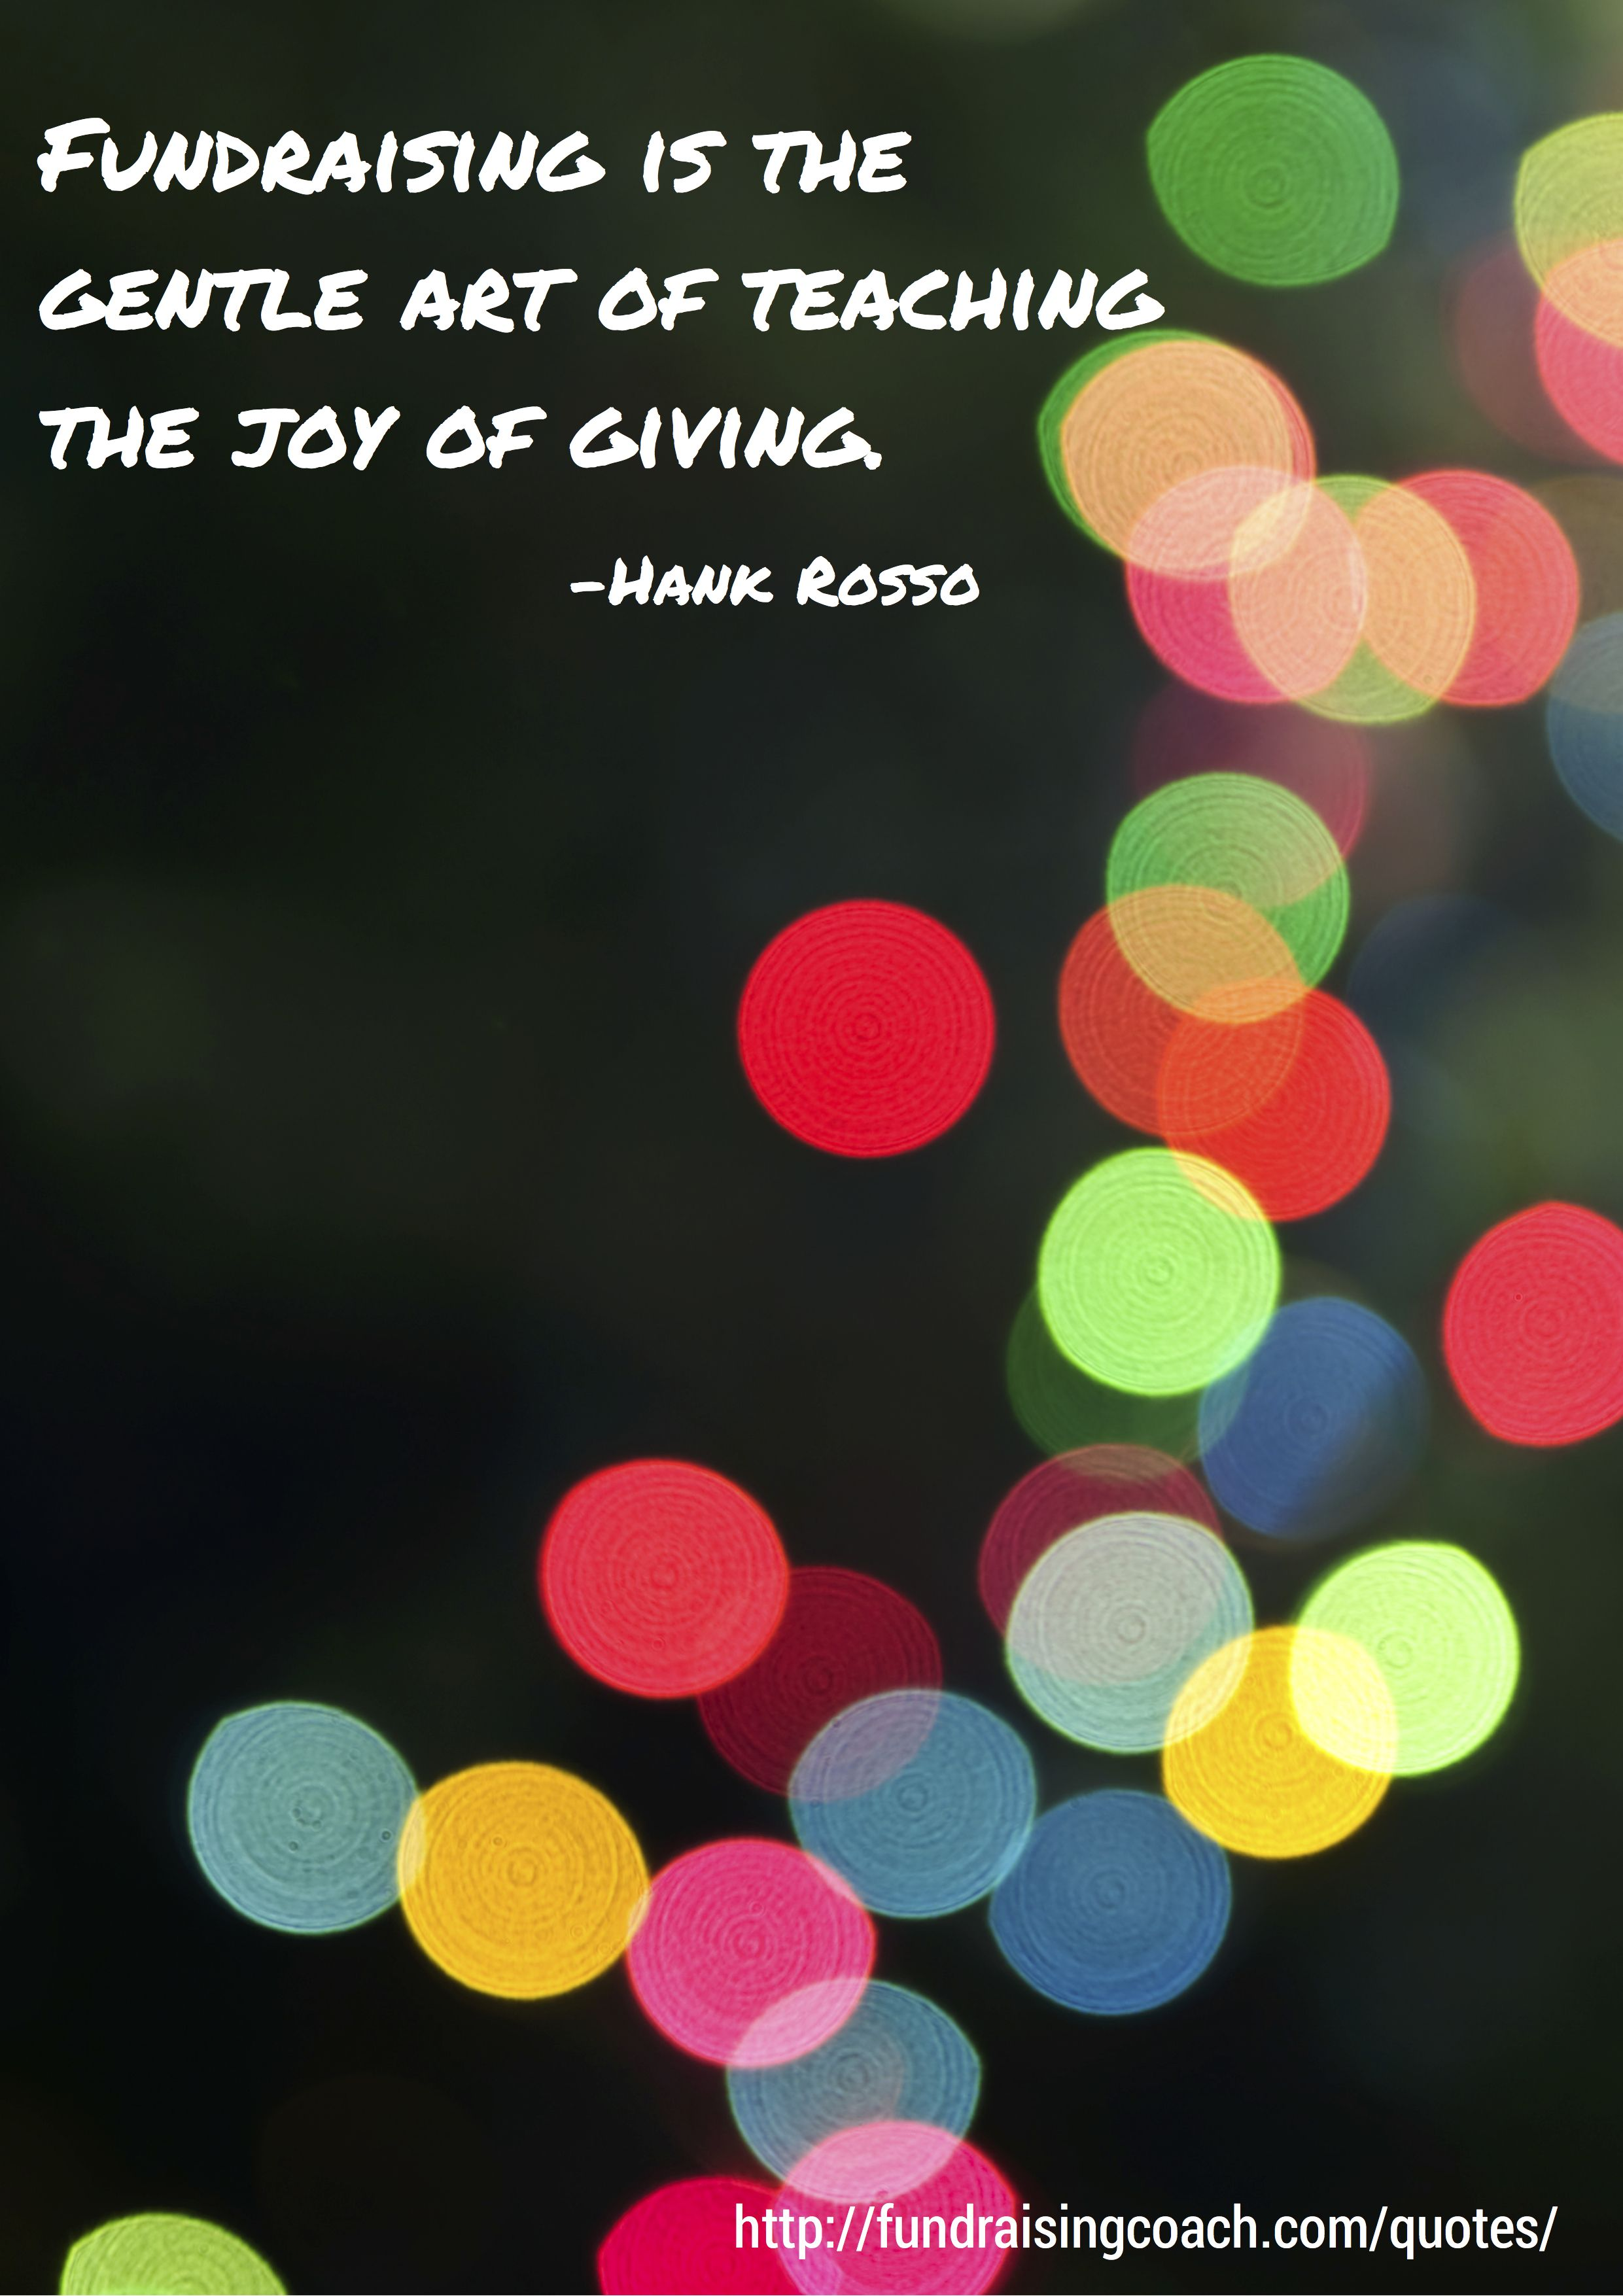 Fundraising Quotes Fundraising Is The Gentle Art Of Teaching The Joy Of Givinghank